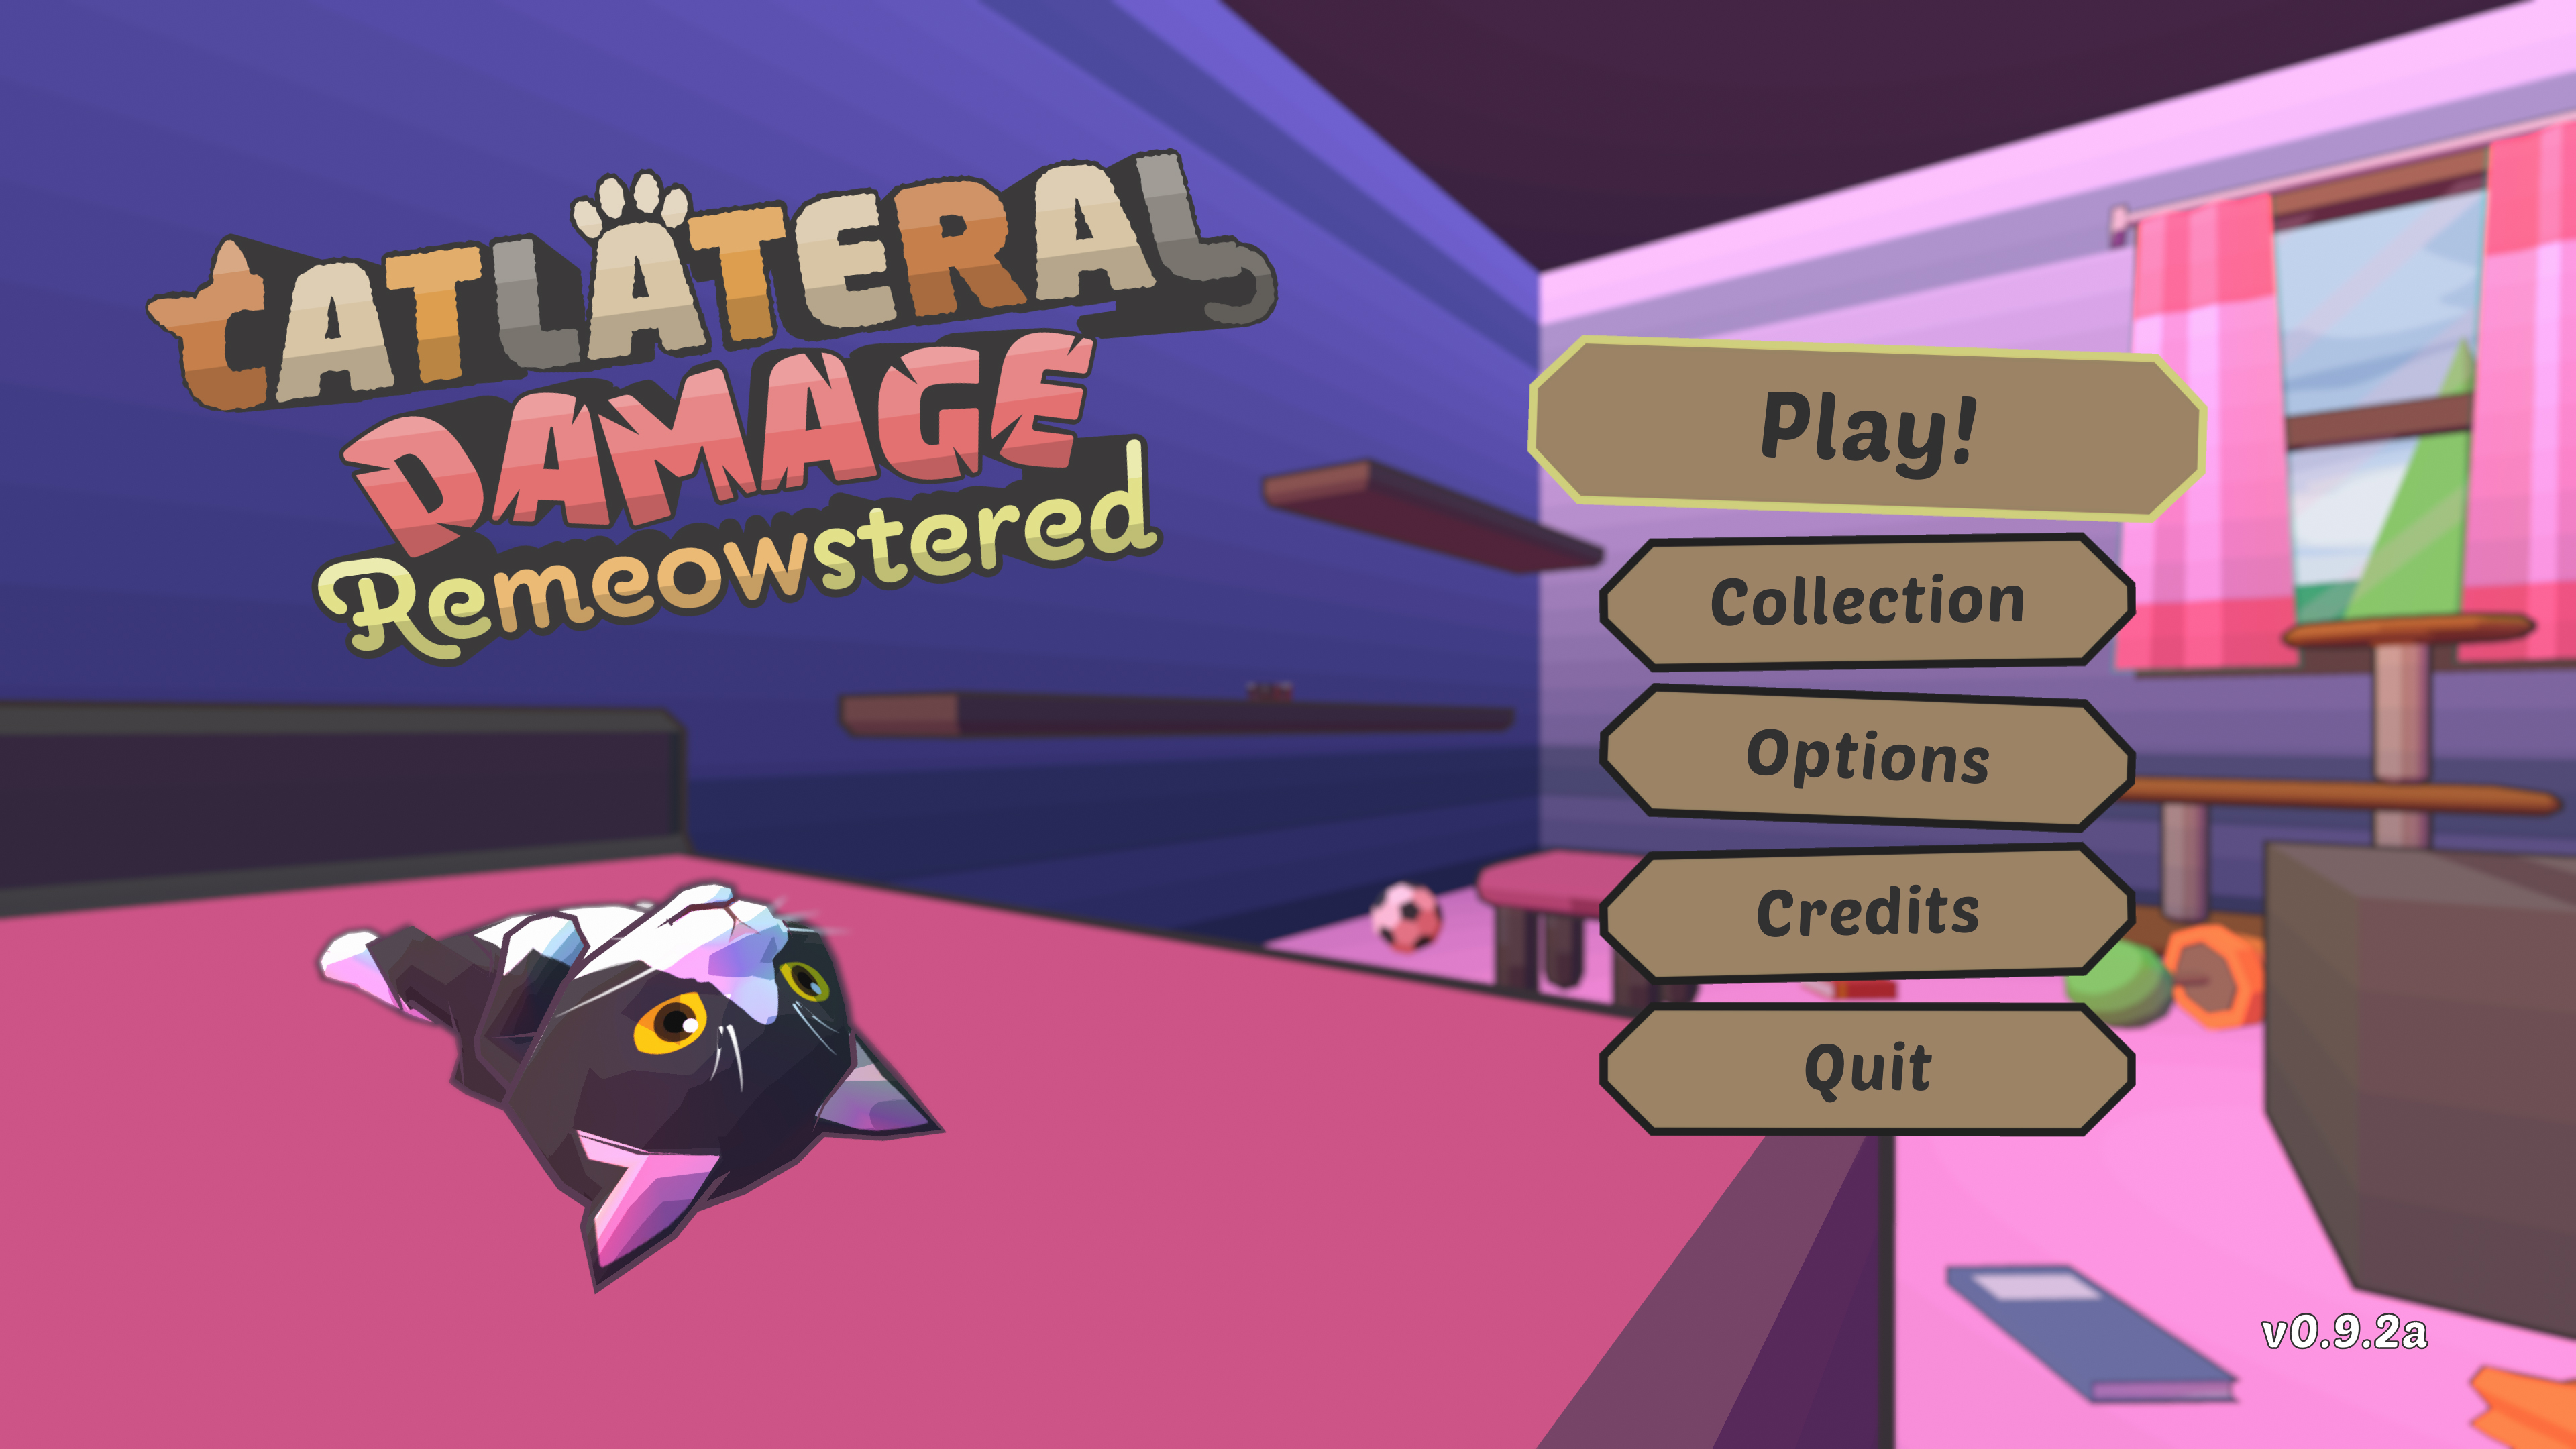 Скриншот №1 к Catlateral Damage Remeowstered